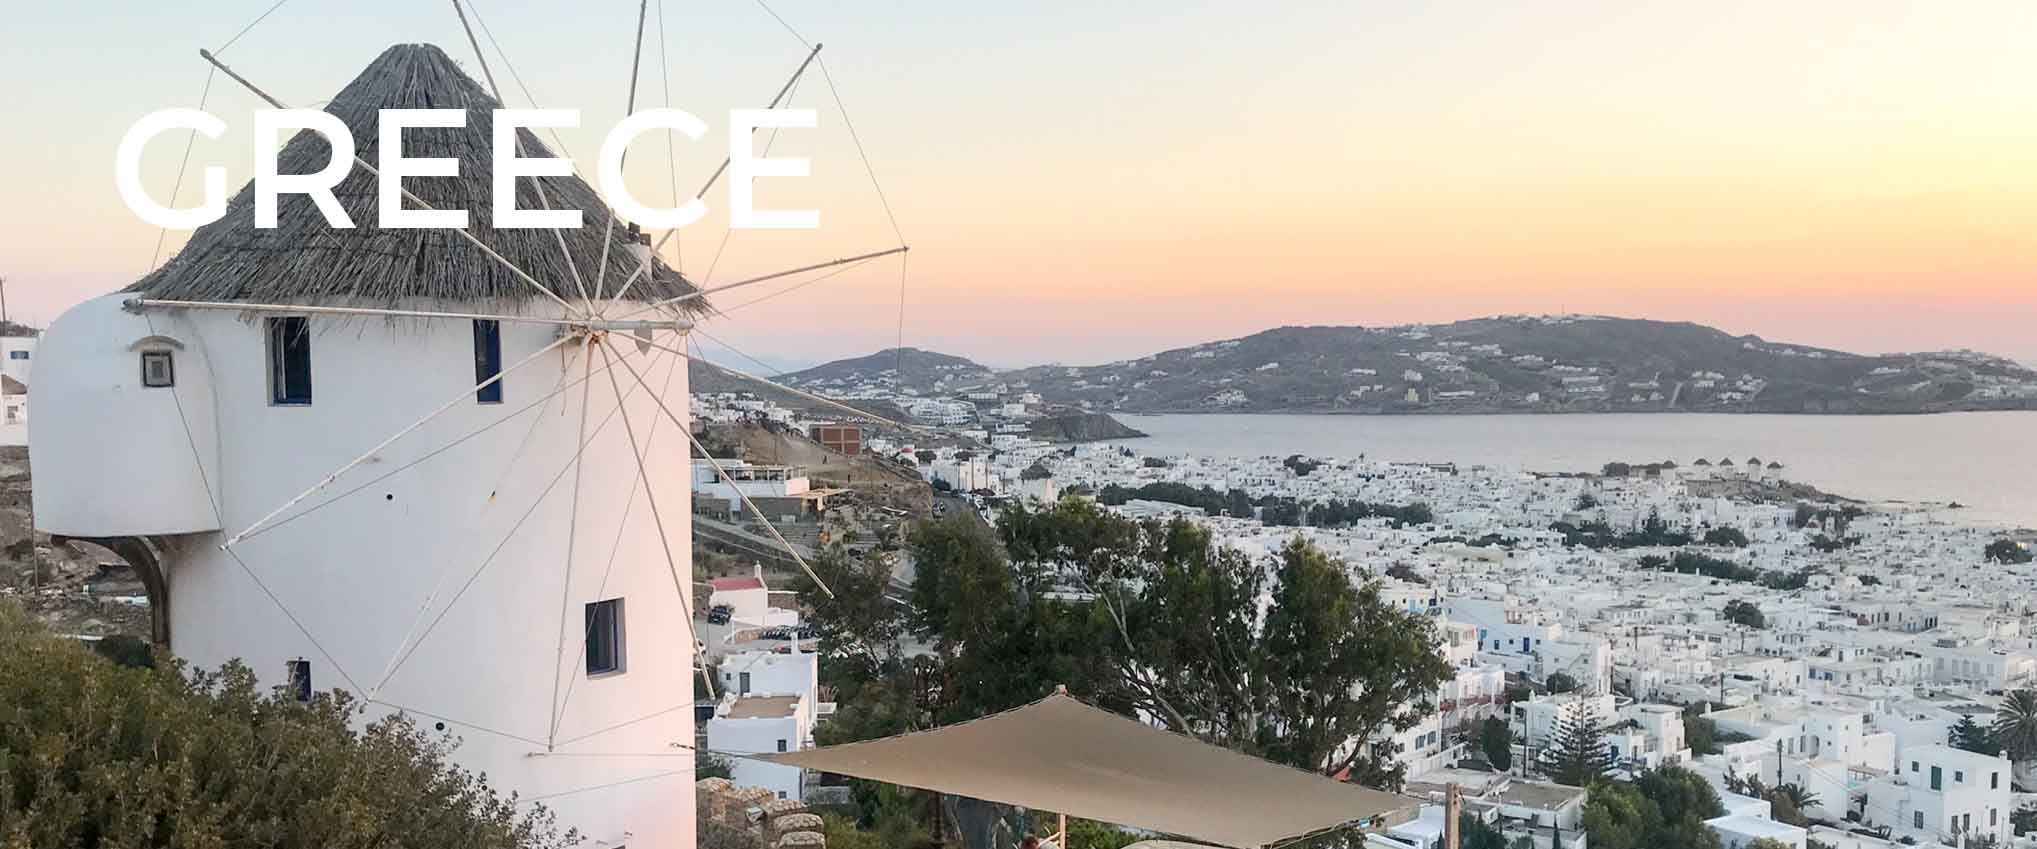 Greece-page-banner